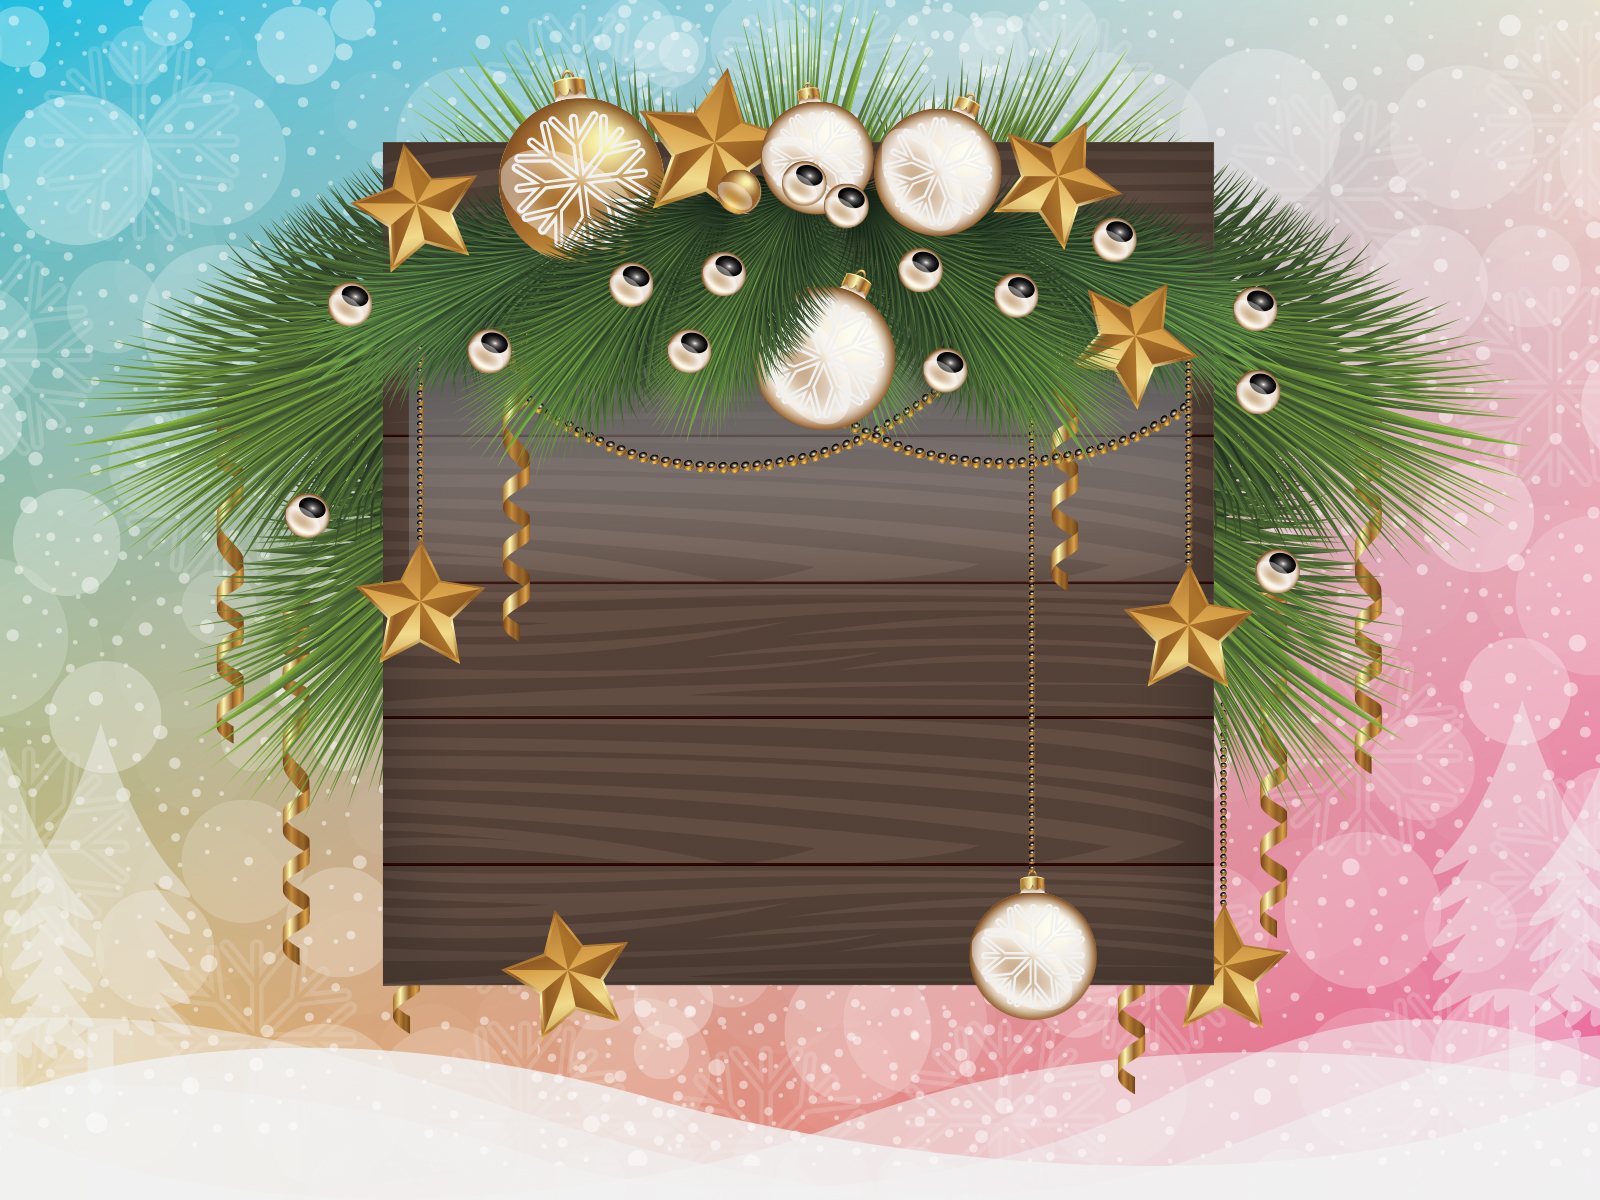 Christmas Frame Backgrounds for Powerpoint Templates - PPT Backgrounds